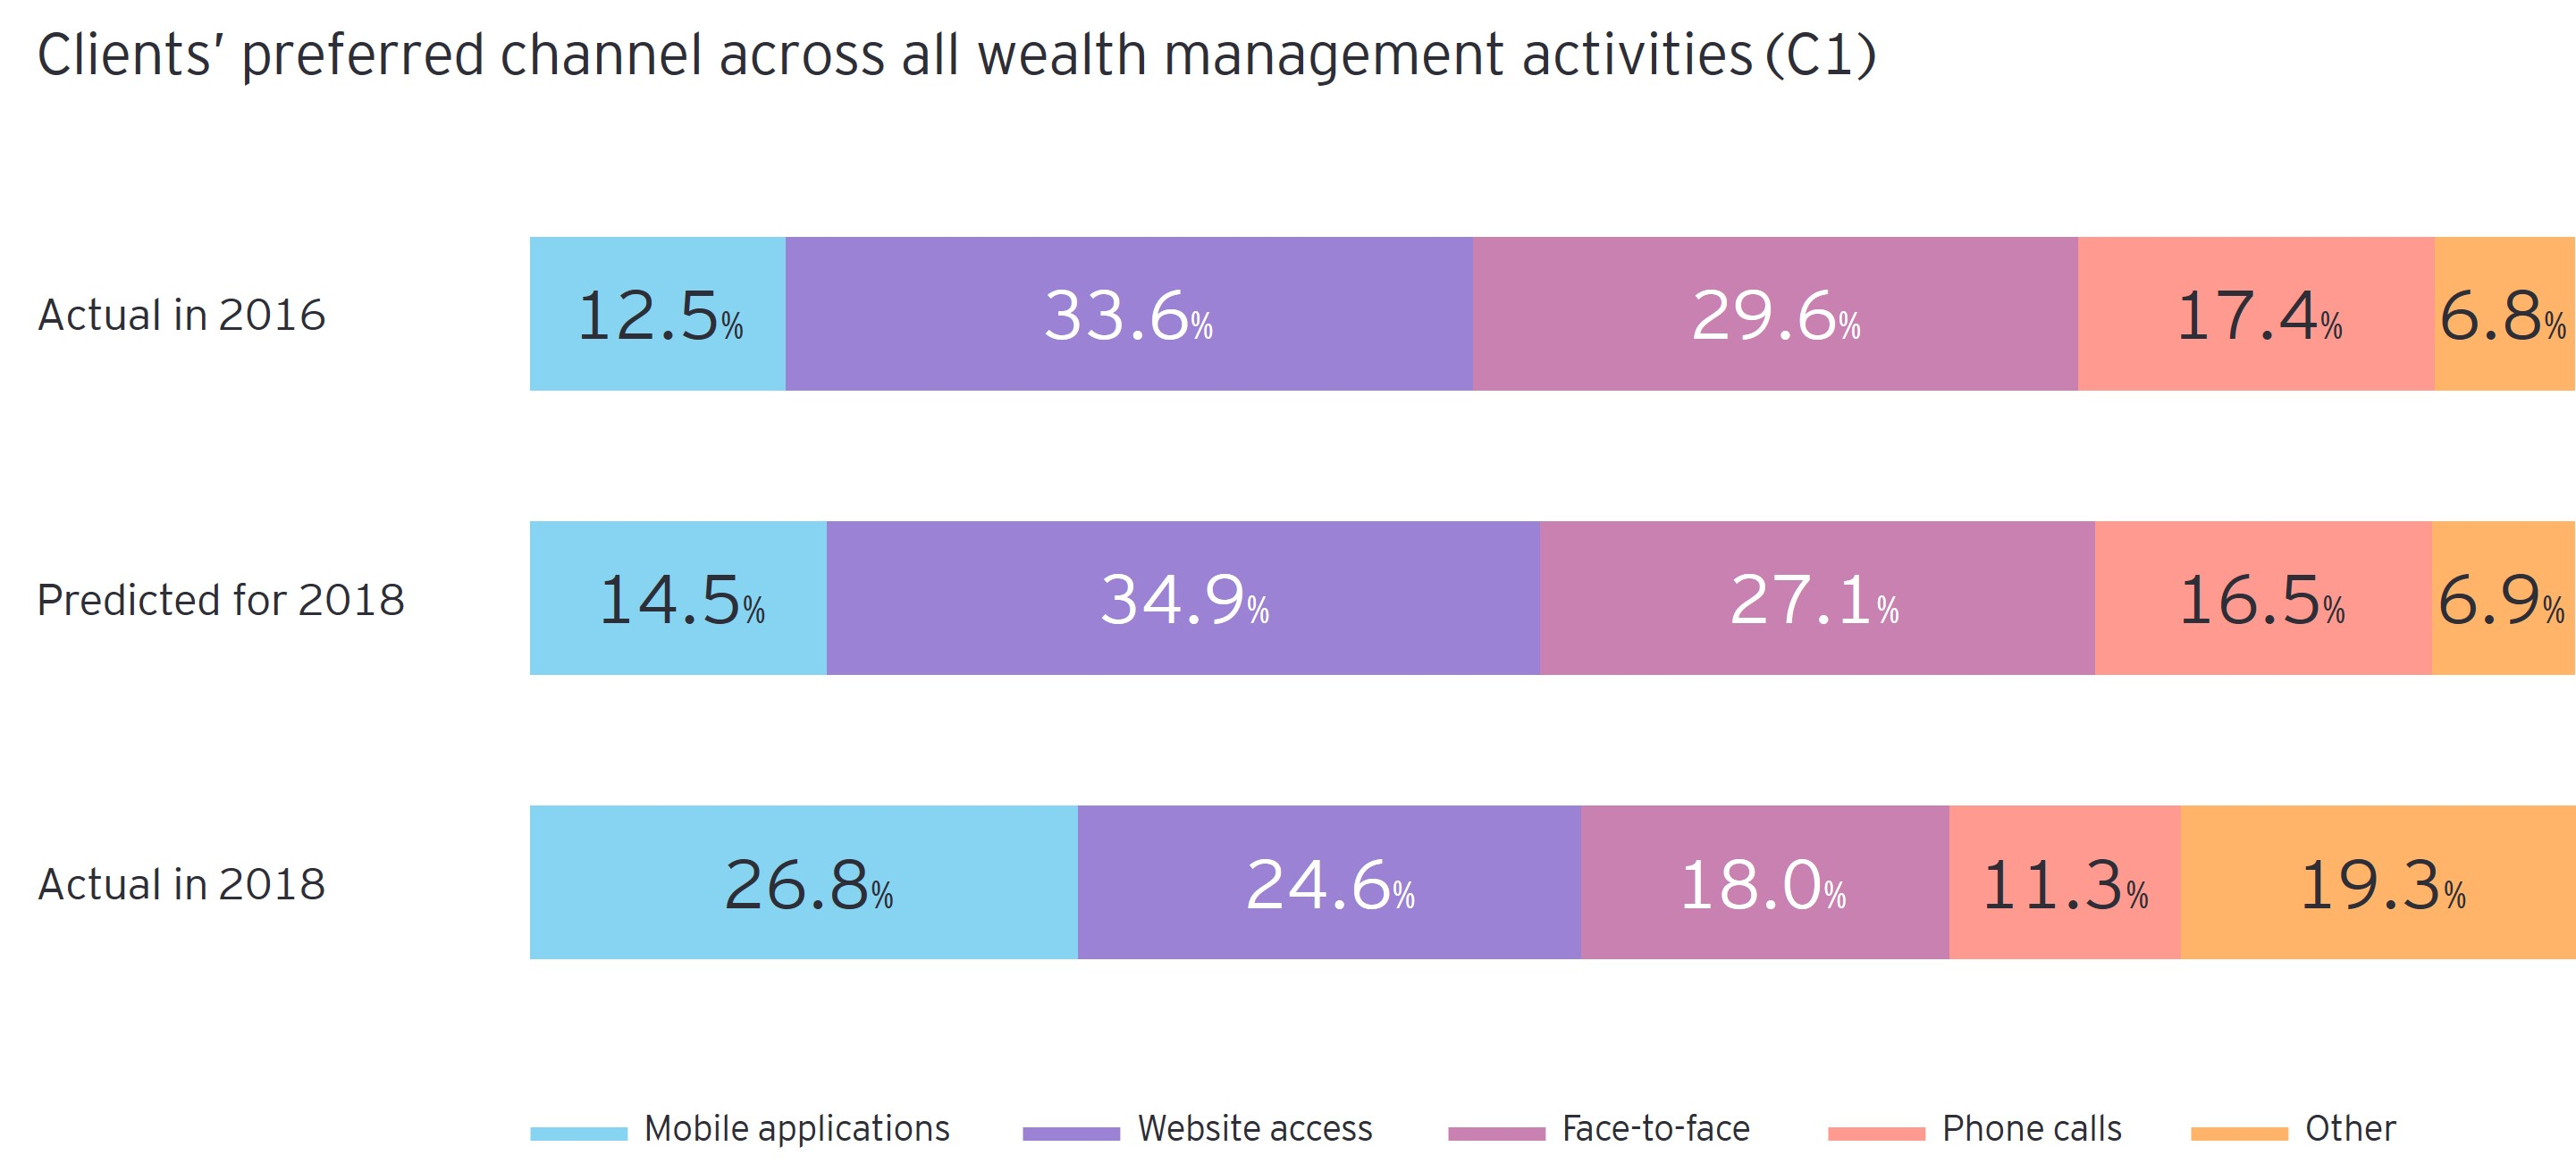 Channel across all wealth management activities